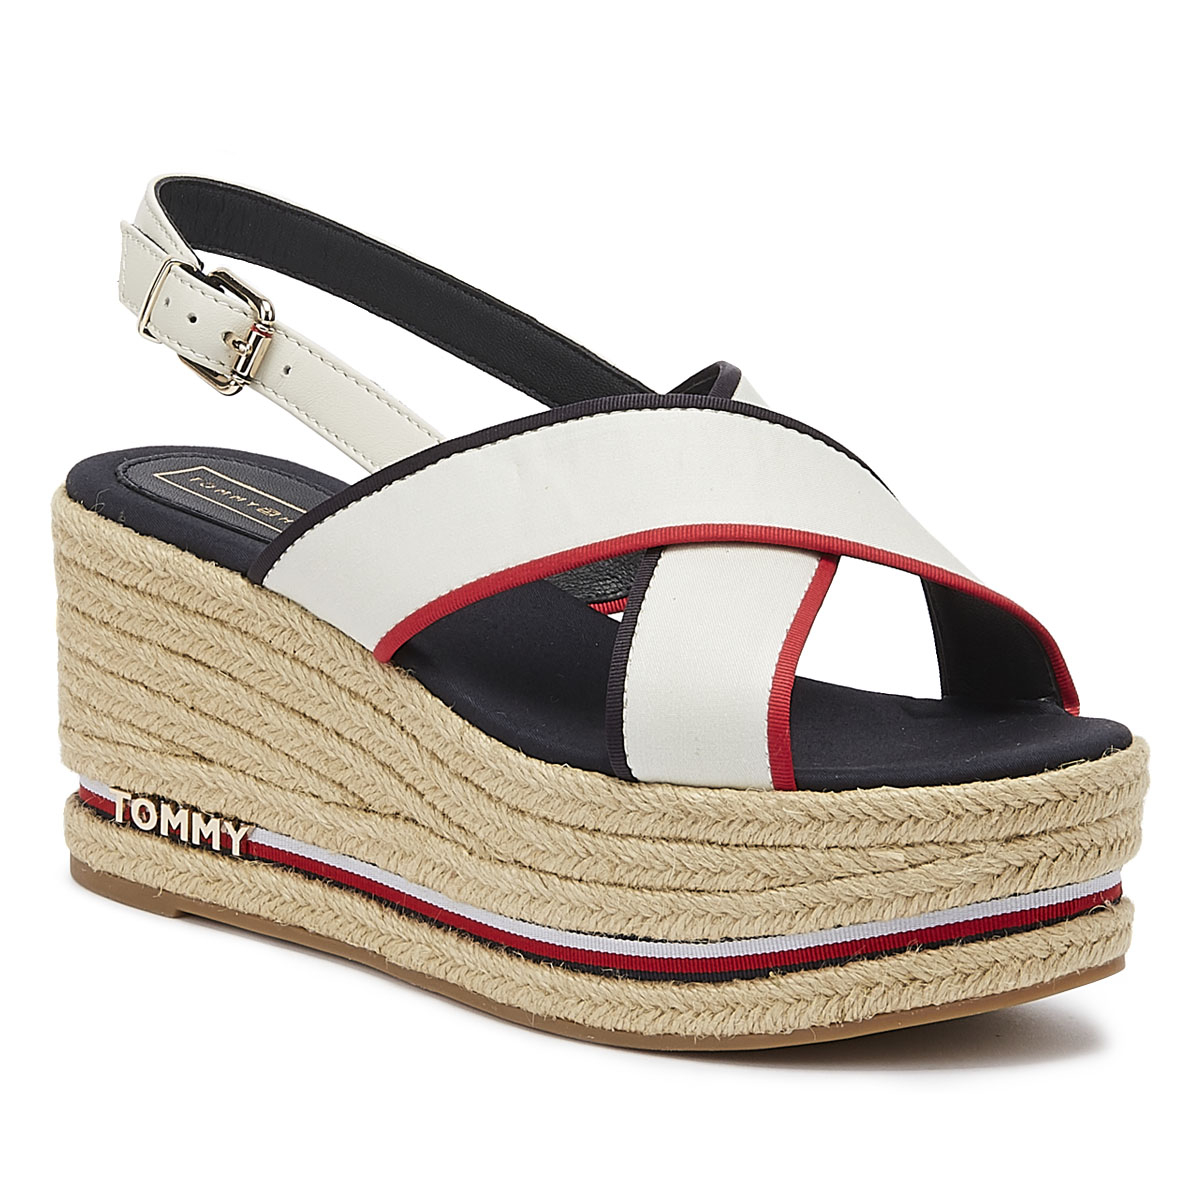 Tommy Hilfiger Flatform Sandal Corporate Womens Footwear Sandals Rwb All Sizes